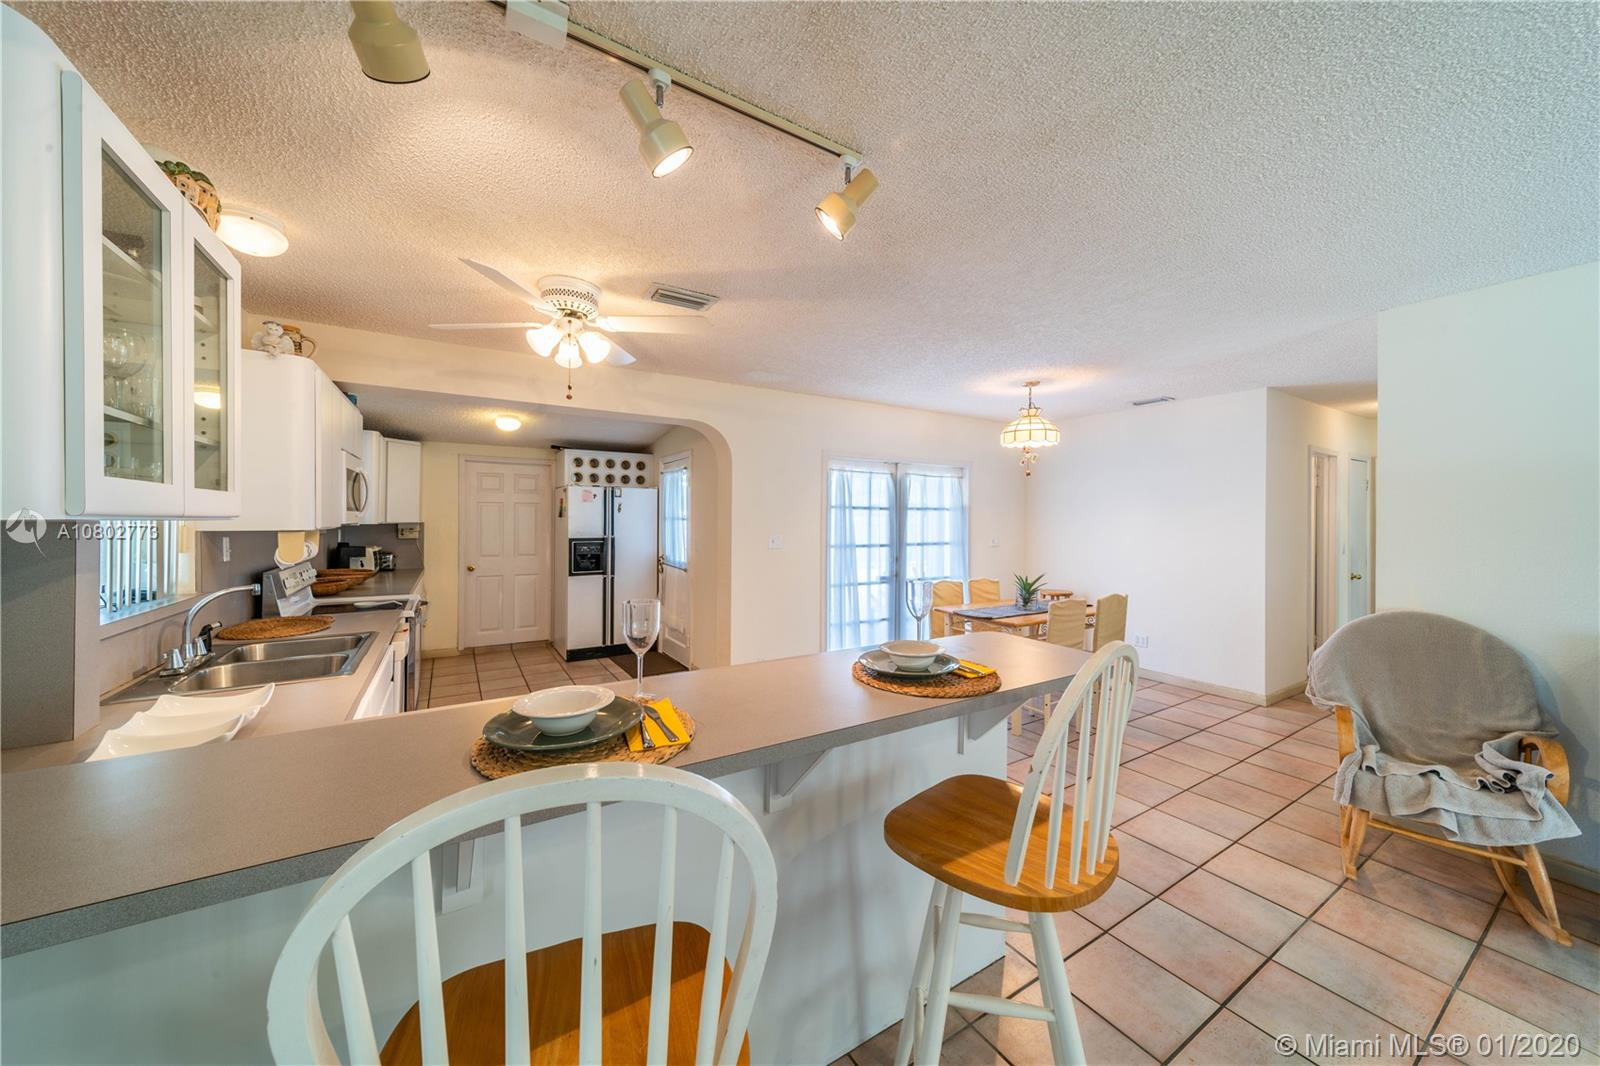 Great opportunity-own this 3 bed/3 bath home w/pool in a large lot in a quiet Cutler Bay street. This home has a great floorplan with tile floors in living areas and lots of natural light. French doors open to the patio/pool area.The open kitchen has a long counter-top (18 footer), eat-in counter/bar, white-formica cabinets in great shape-like new.  The oversize backyard offers plenty of room to entertain, the pool measures  24 ft x 12 ft and the great shaded-gathering area under the tiki hut with hammock is all you need to relax.This home also has a new shingle roof from 2017 and includes a large shed for all the men's toys & tools which measures 21 ft x 8 ft.Some updates will make this the perfect home for you. Close to many schools, shopping, restaurants, US-1 and Turnpike. No HOA.